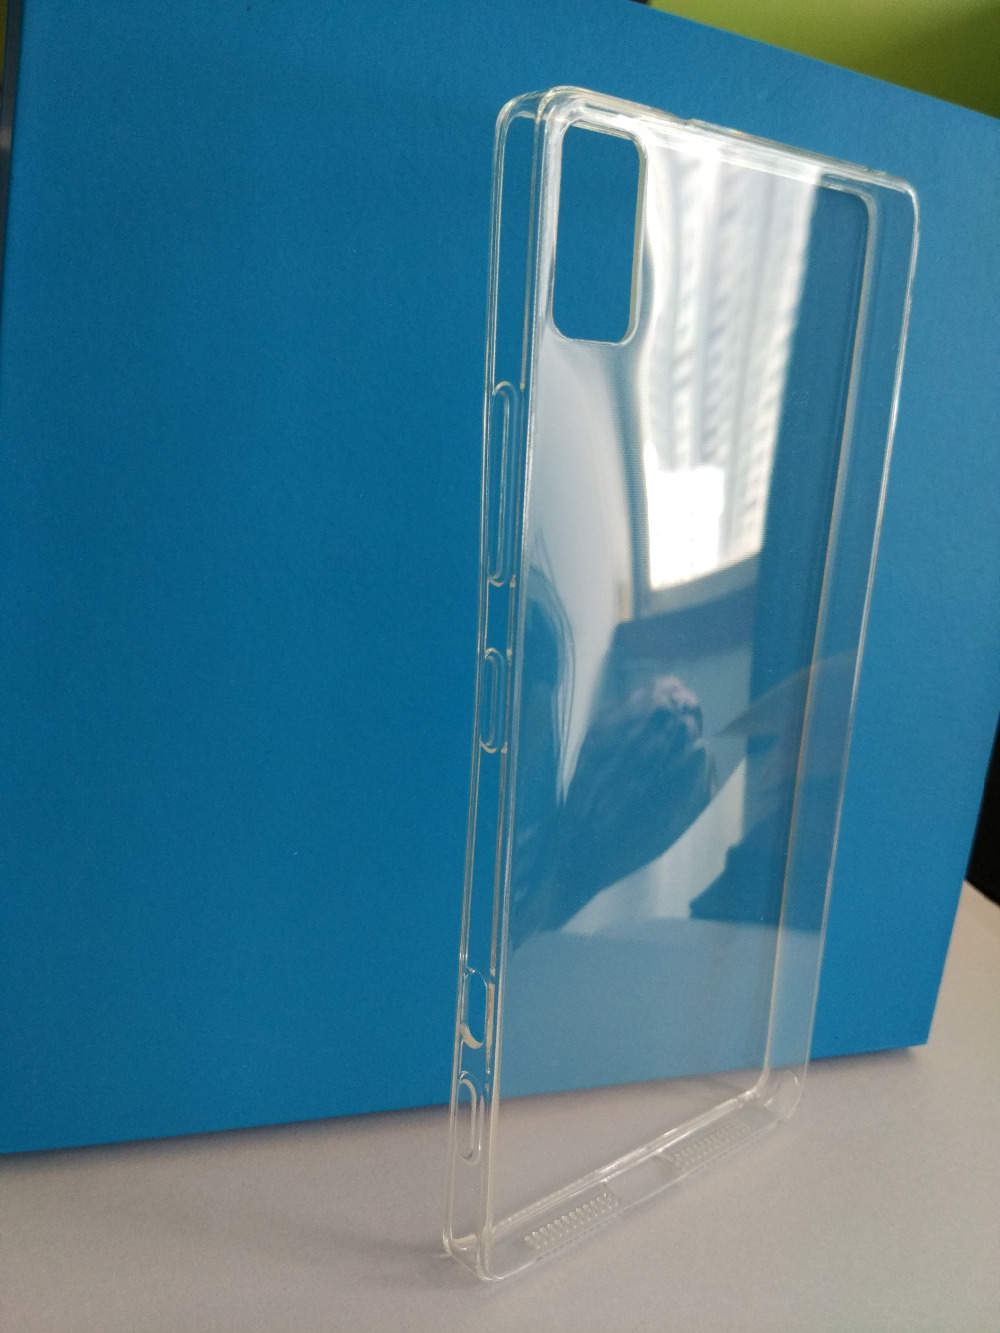 New High Quality Ultra Transparent Silicon case Clear soft case For Lenovo Z90 7 Z90 3 in good quality freeship in Phone Bumpers from Cellphones Telecommunications